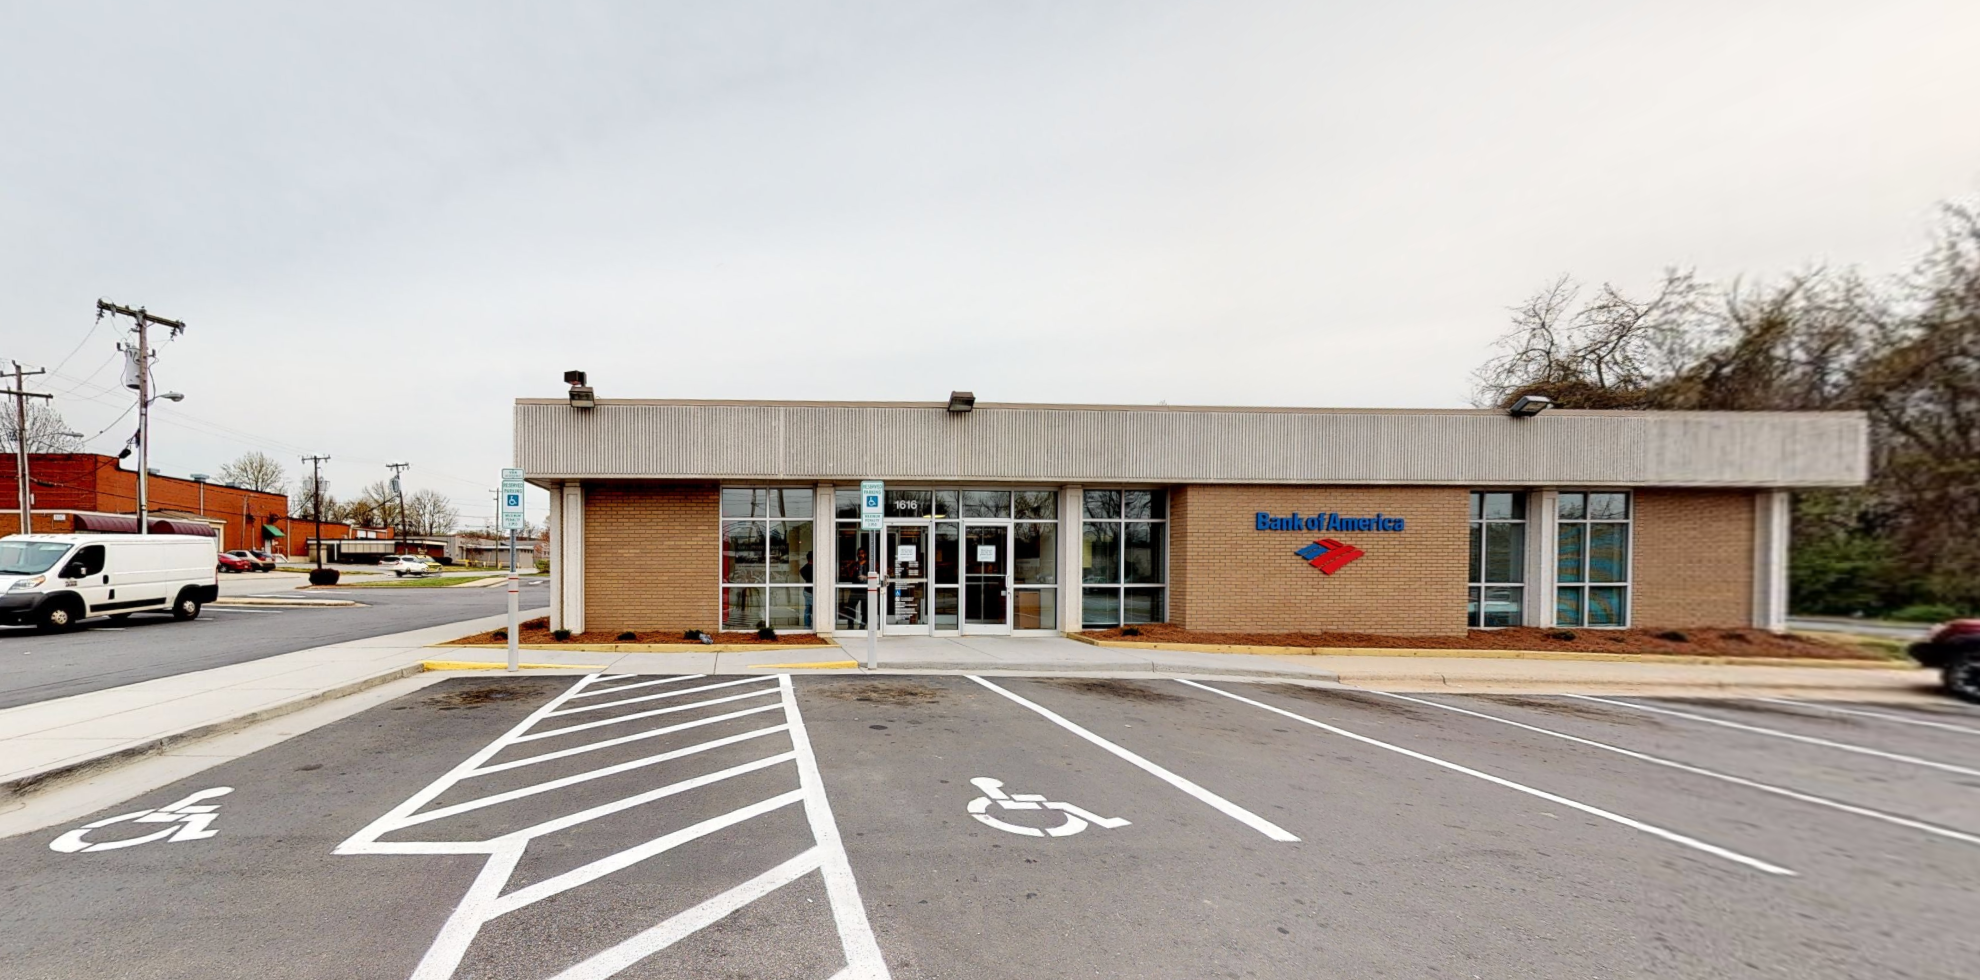 Bank of America financial center with drive-thru ATM and teller | 1616 E Bessemer Ave, Greensboro, NC 27405